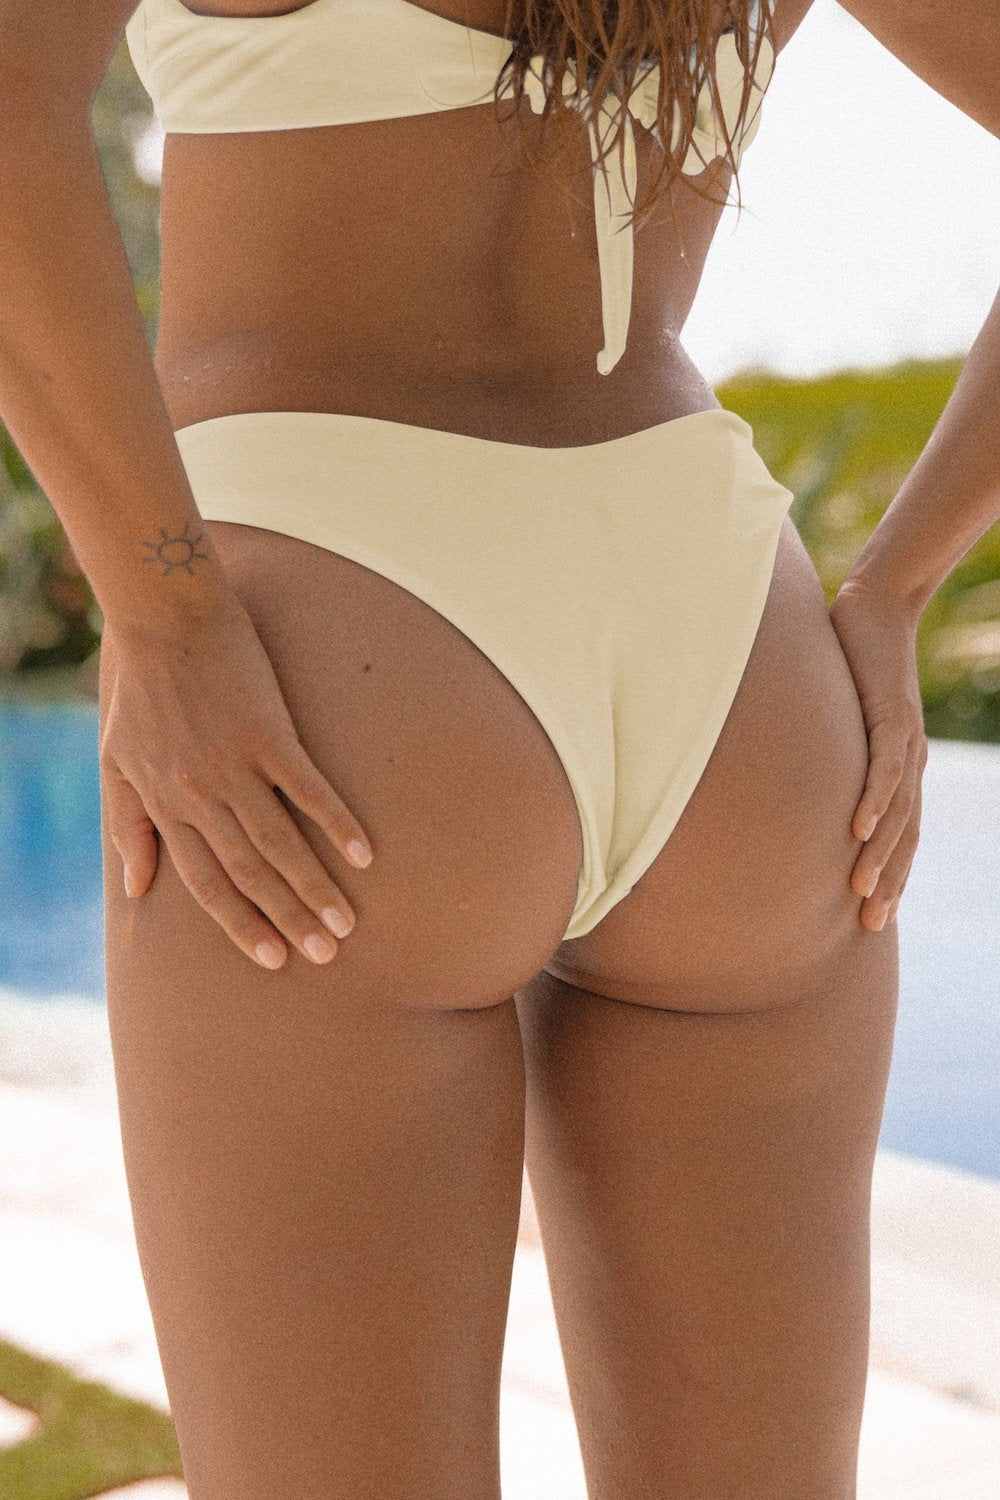 Ete Swimwear Ete X Matilda - Neptune Cheeky Bottoms (Sunset) - Nomads Cove